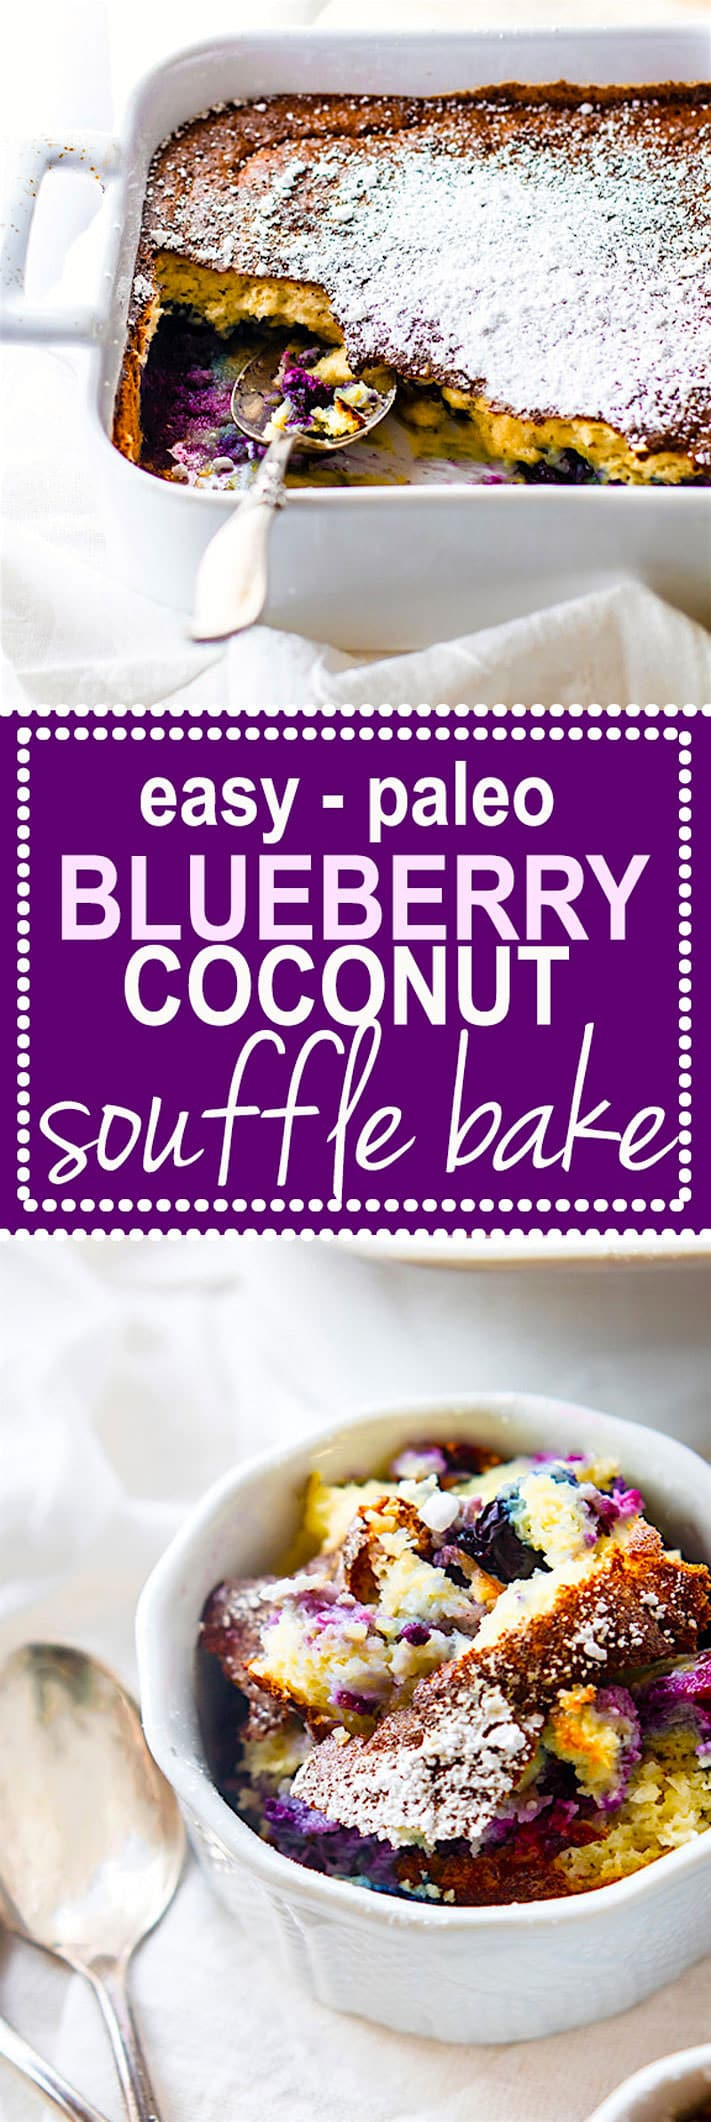 DREAMY Paleo Blueberry Coconut Soufflé Bake! Rich and creamy yet also airy and lightly sweet! This low carb paleo blueberry coconut soufflé bake is a twist on the classic French dish. A Healthy Fool Proof souffle that's great for a dessert or brunch! A custard like center but still light and flavorful. Feeds many, simple ingredients, and so delicious! @cottercrunch